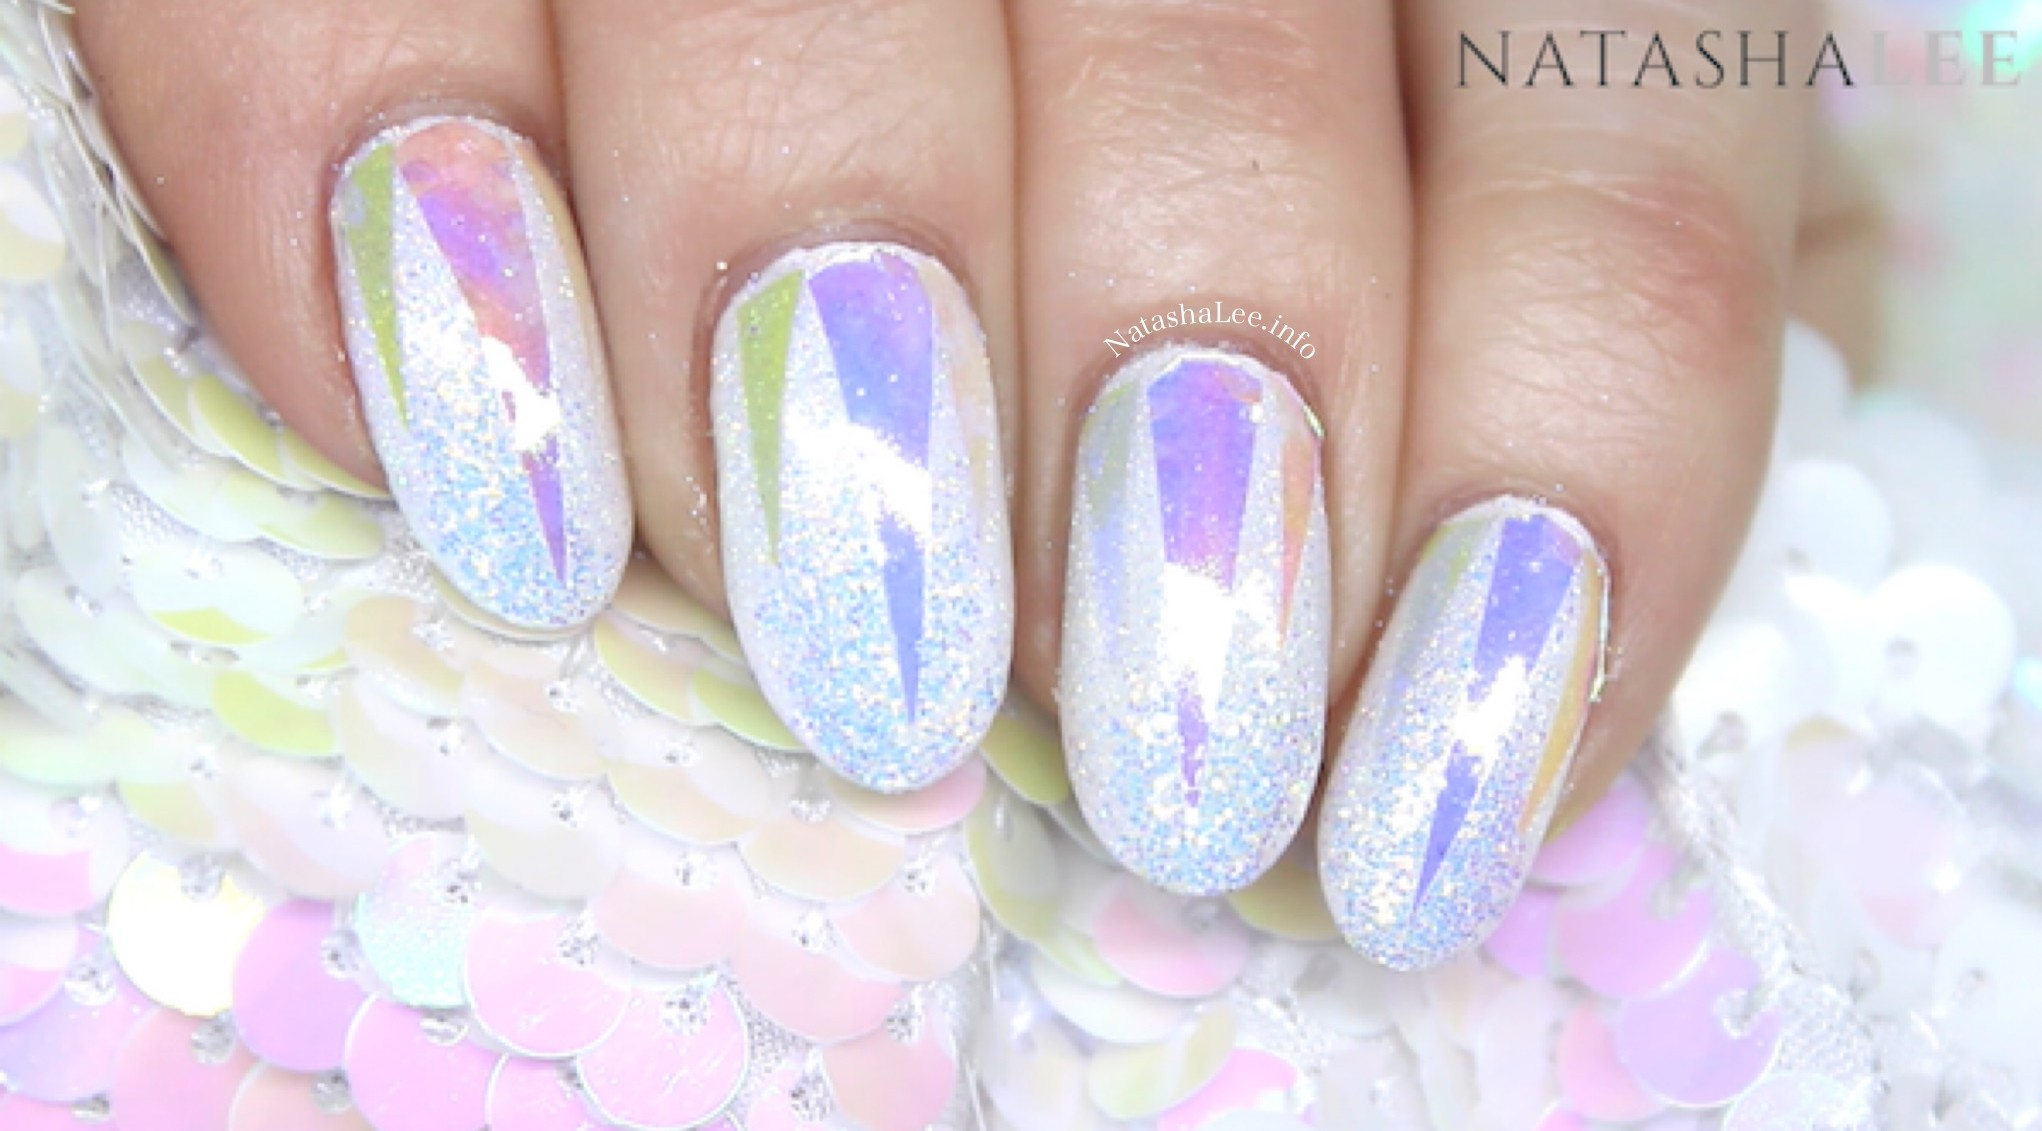 HOLO GLASS UNICORN NAIL ART WITH IRIDESCENT GLITTER